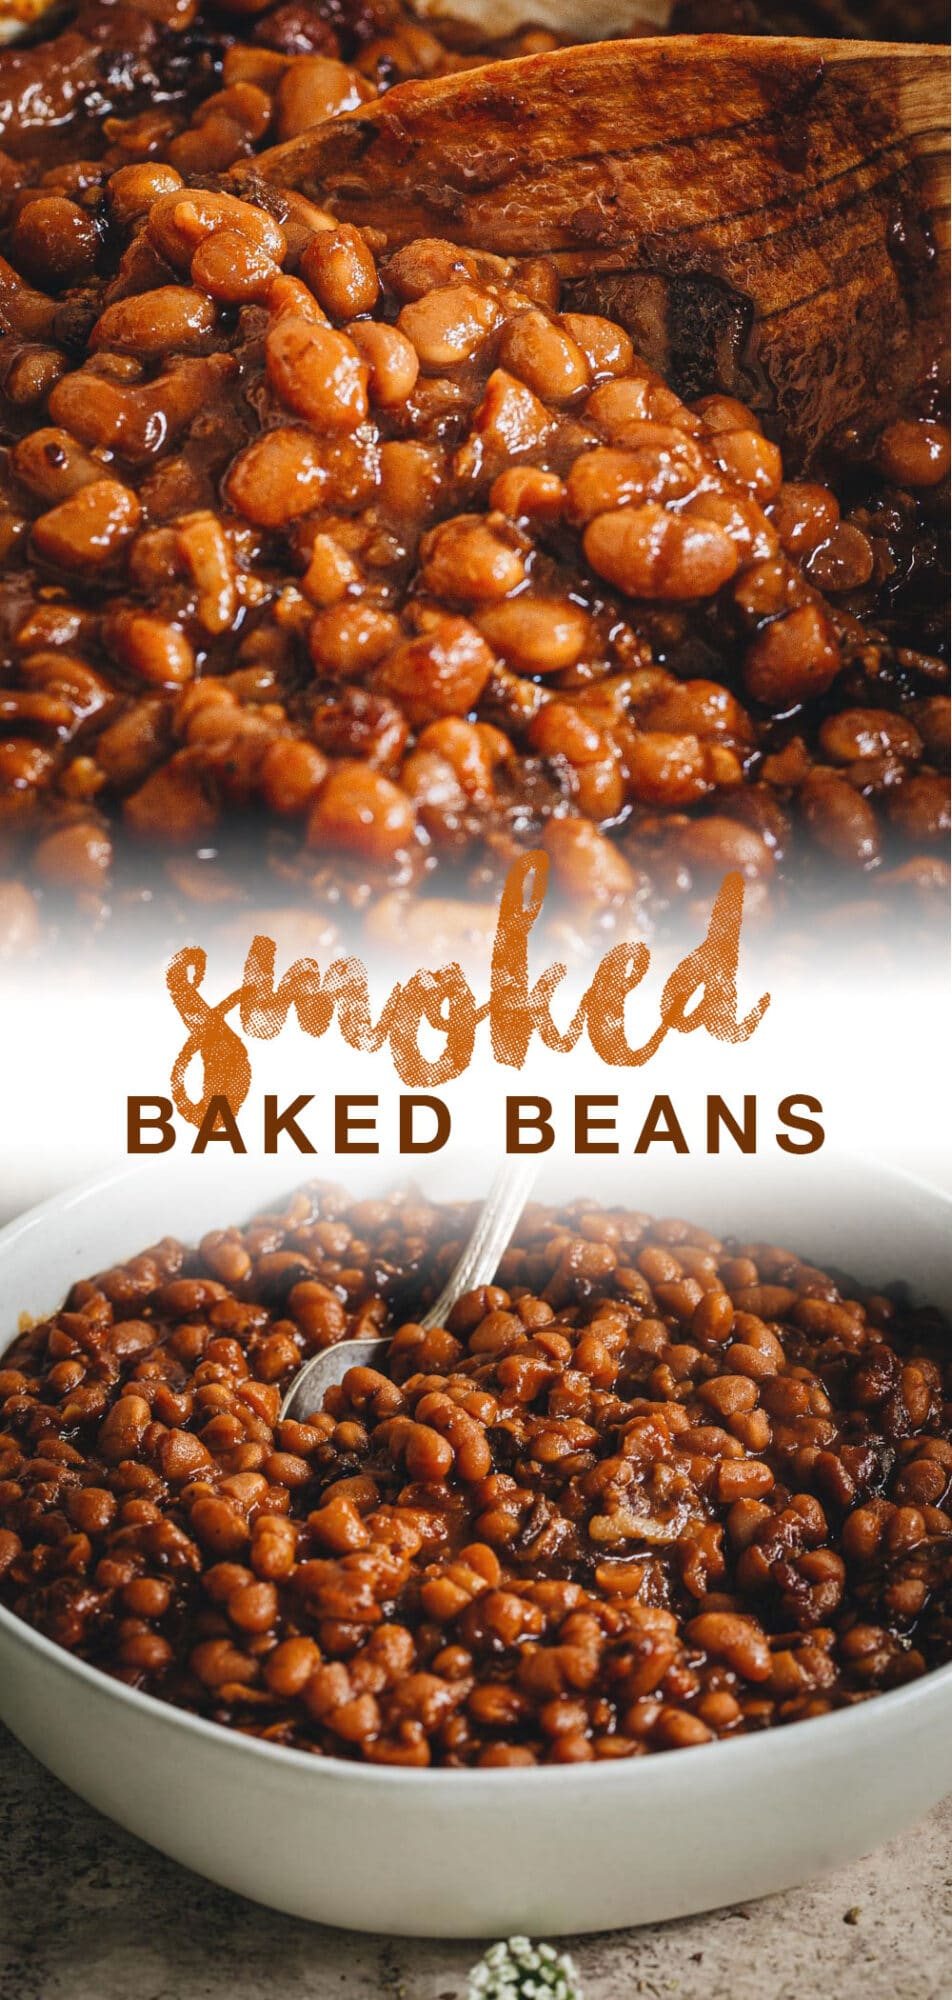 double image of baked beans with orange title